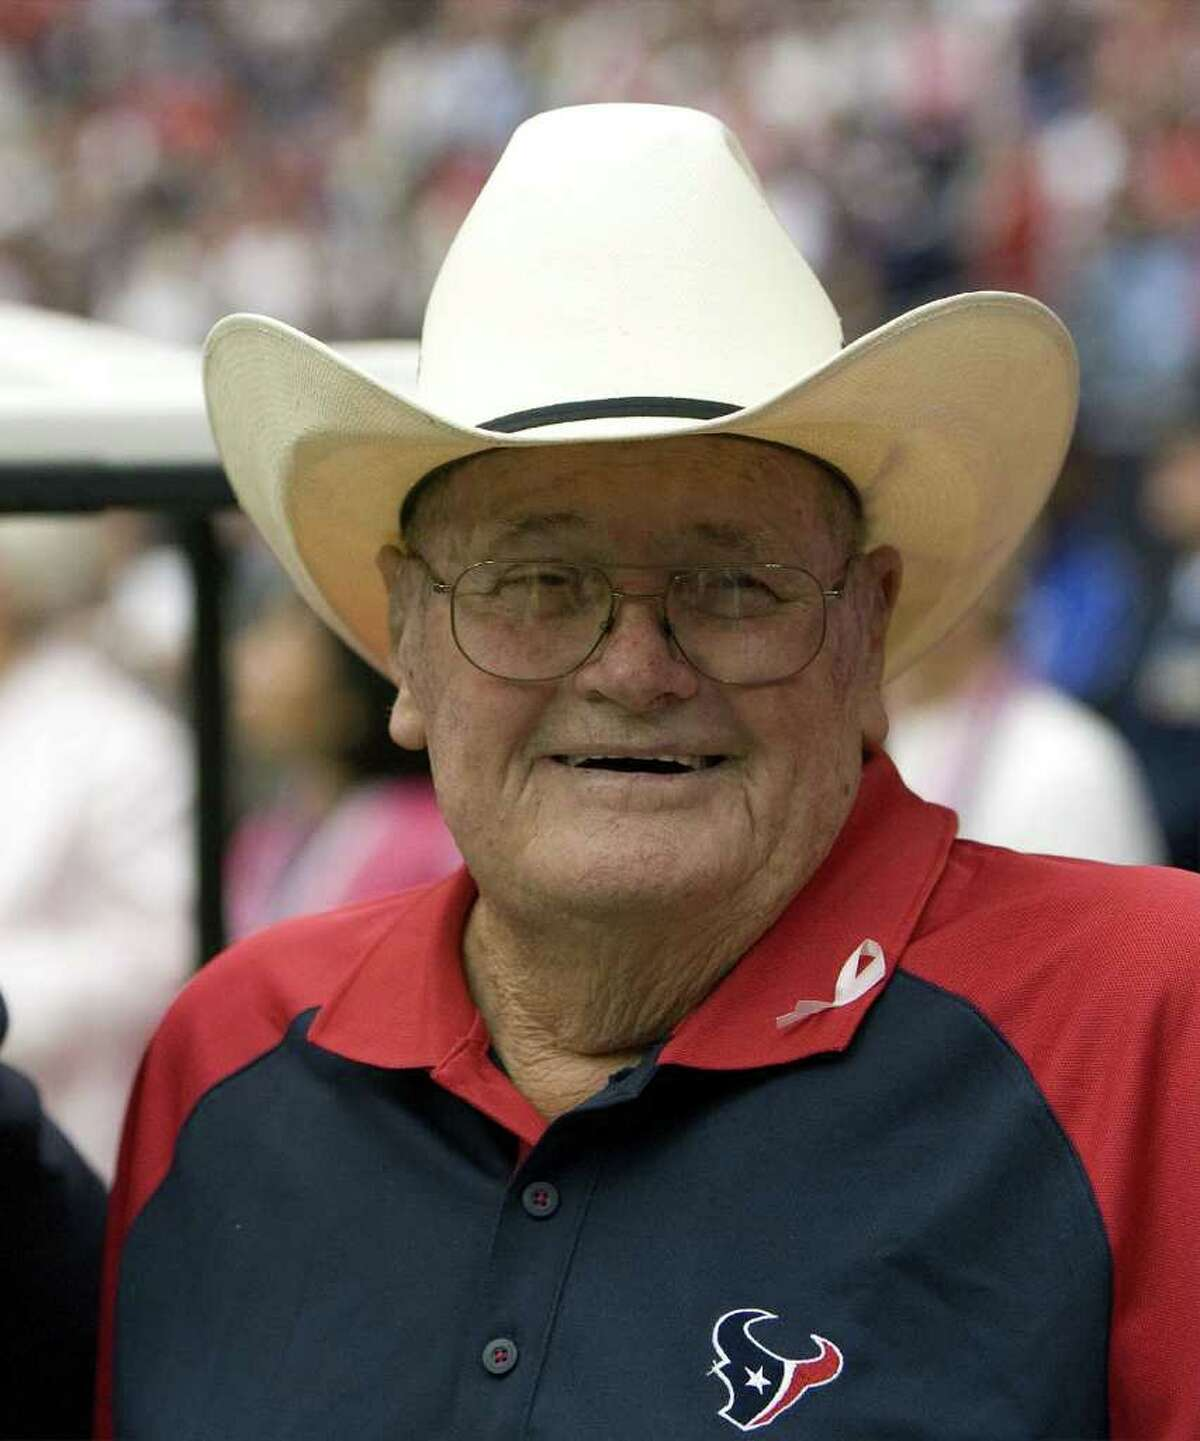 Legendary football coach Bum Phillips is rarely photographed these days without his signature cowboy hat. Phillips will be in Port Neches Friday night to watch the Mid County Madness game between the Nederland Bulldogs and Port Neches Indians. Houston Chronicle file photo